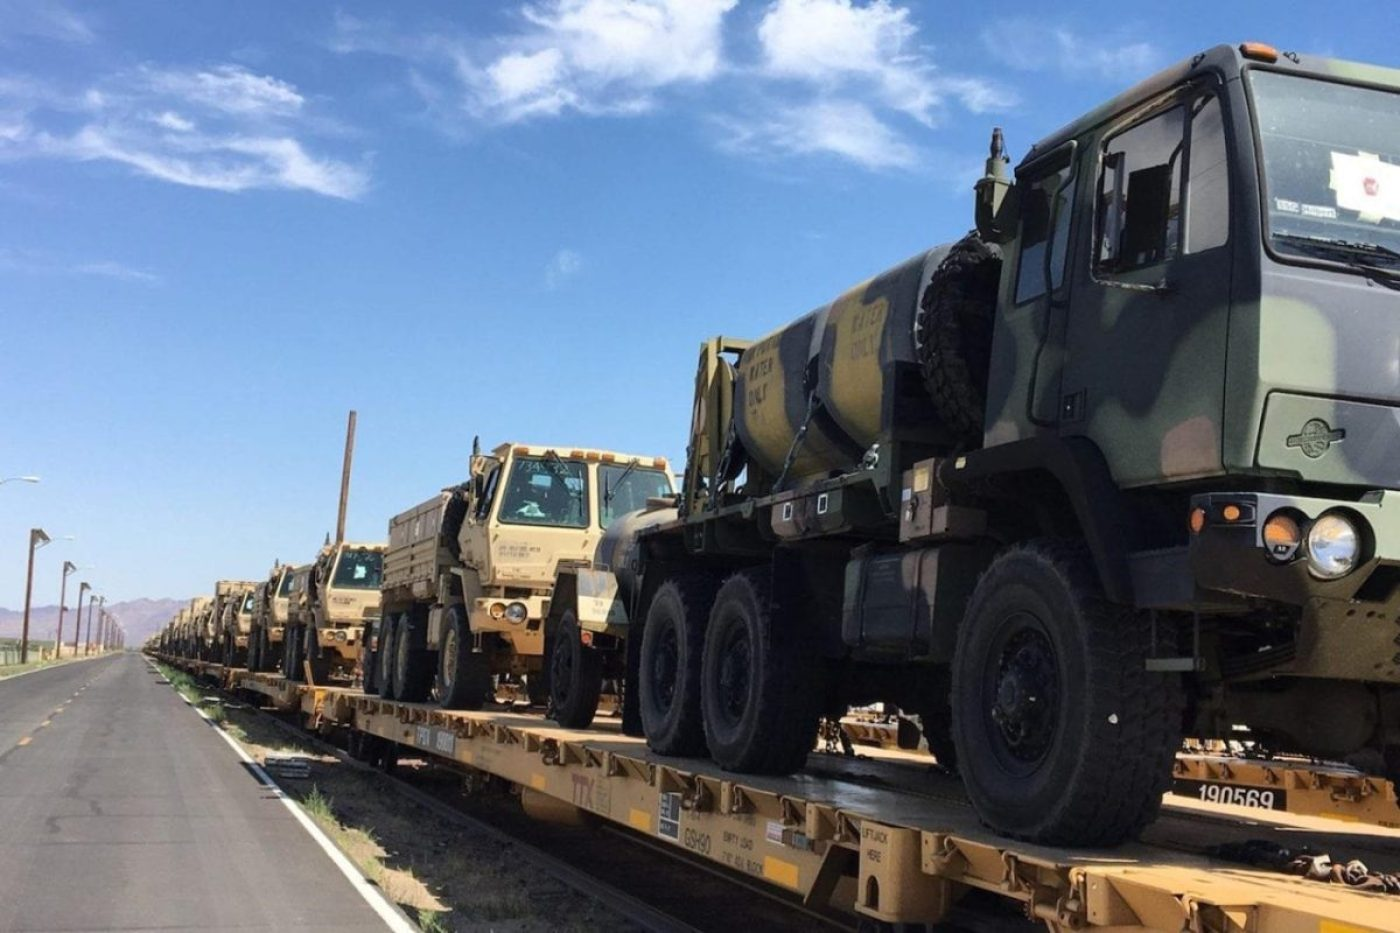 Soldiers of the North Carolina National Guard's 690th Brigade Support Battalion, 30th Armored Brigade Combat Team (ABCT), conduct rail operations at Marine Corps Logistics Base Barstow, Yermo Annex, California. (U.S. Army National Guard photo, Released)